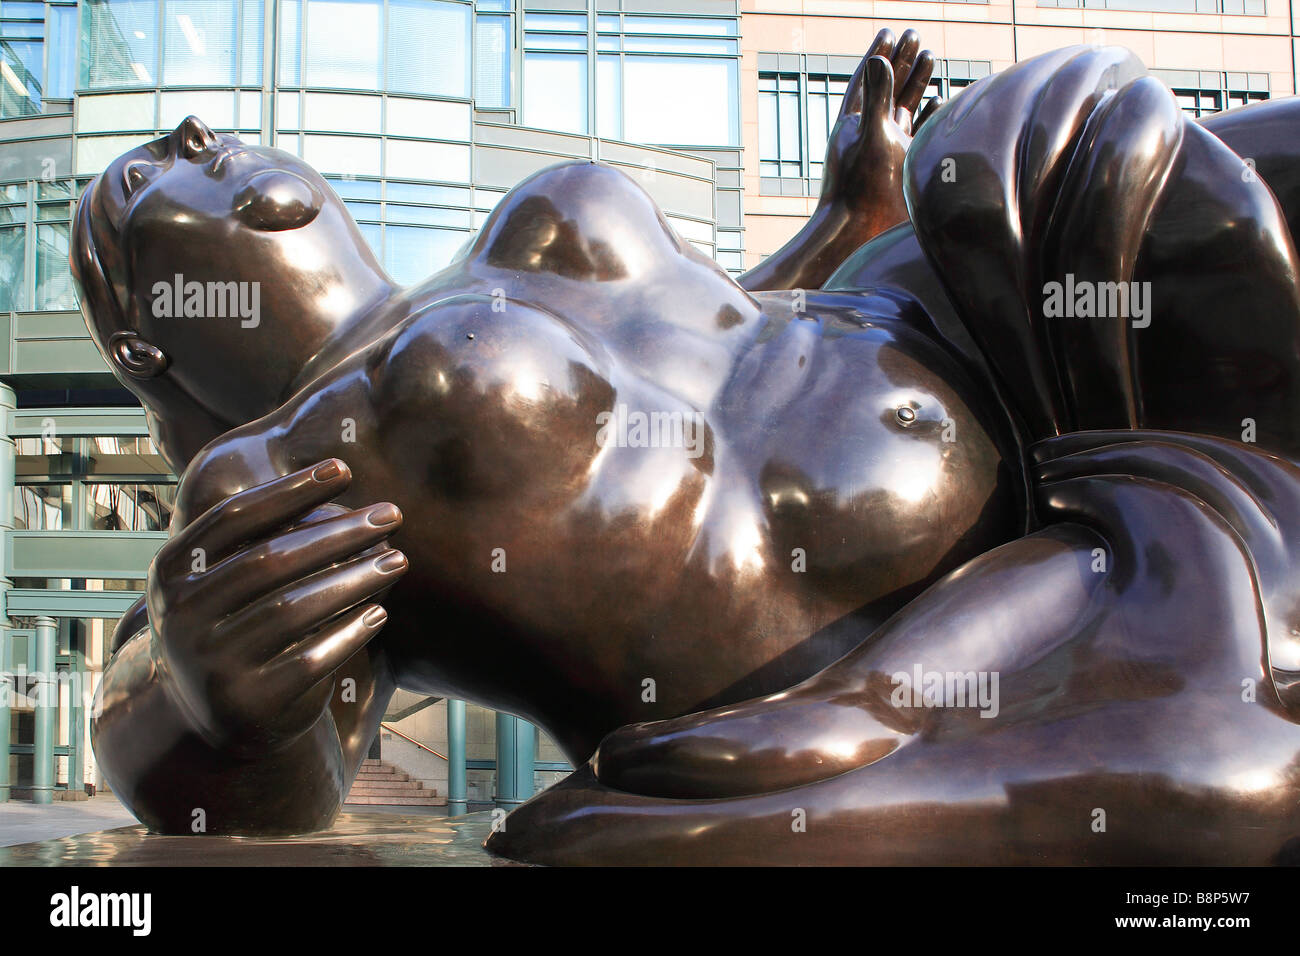 The Broadgate Venus, behind Liverpool Street Station, City of London, UK - Stock Image